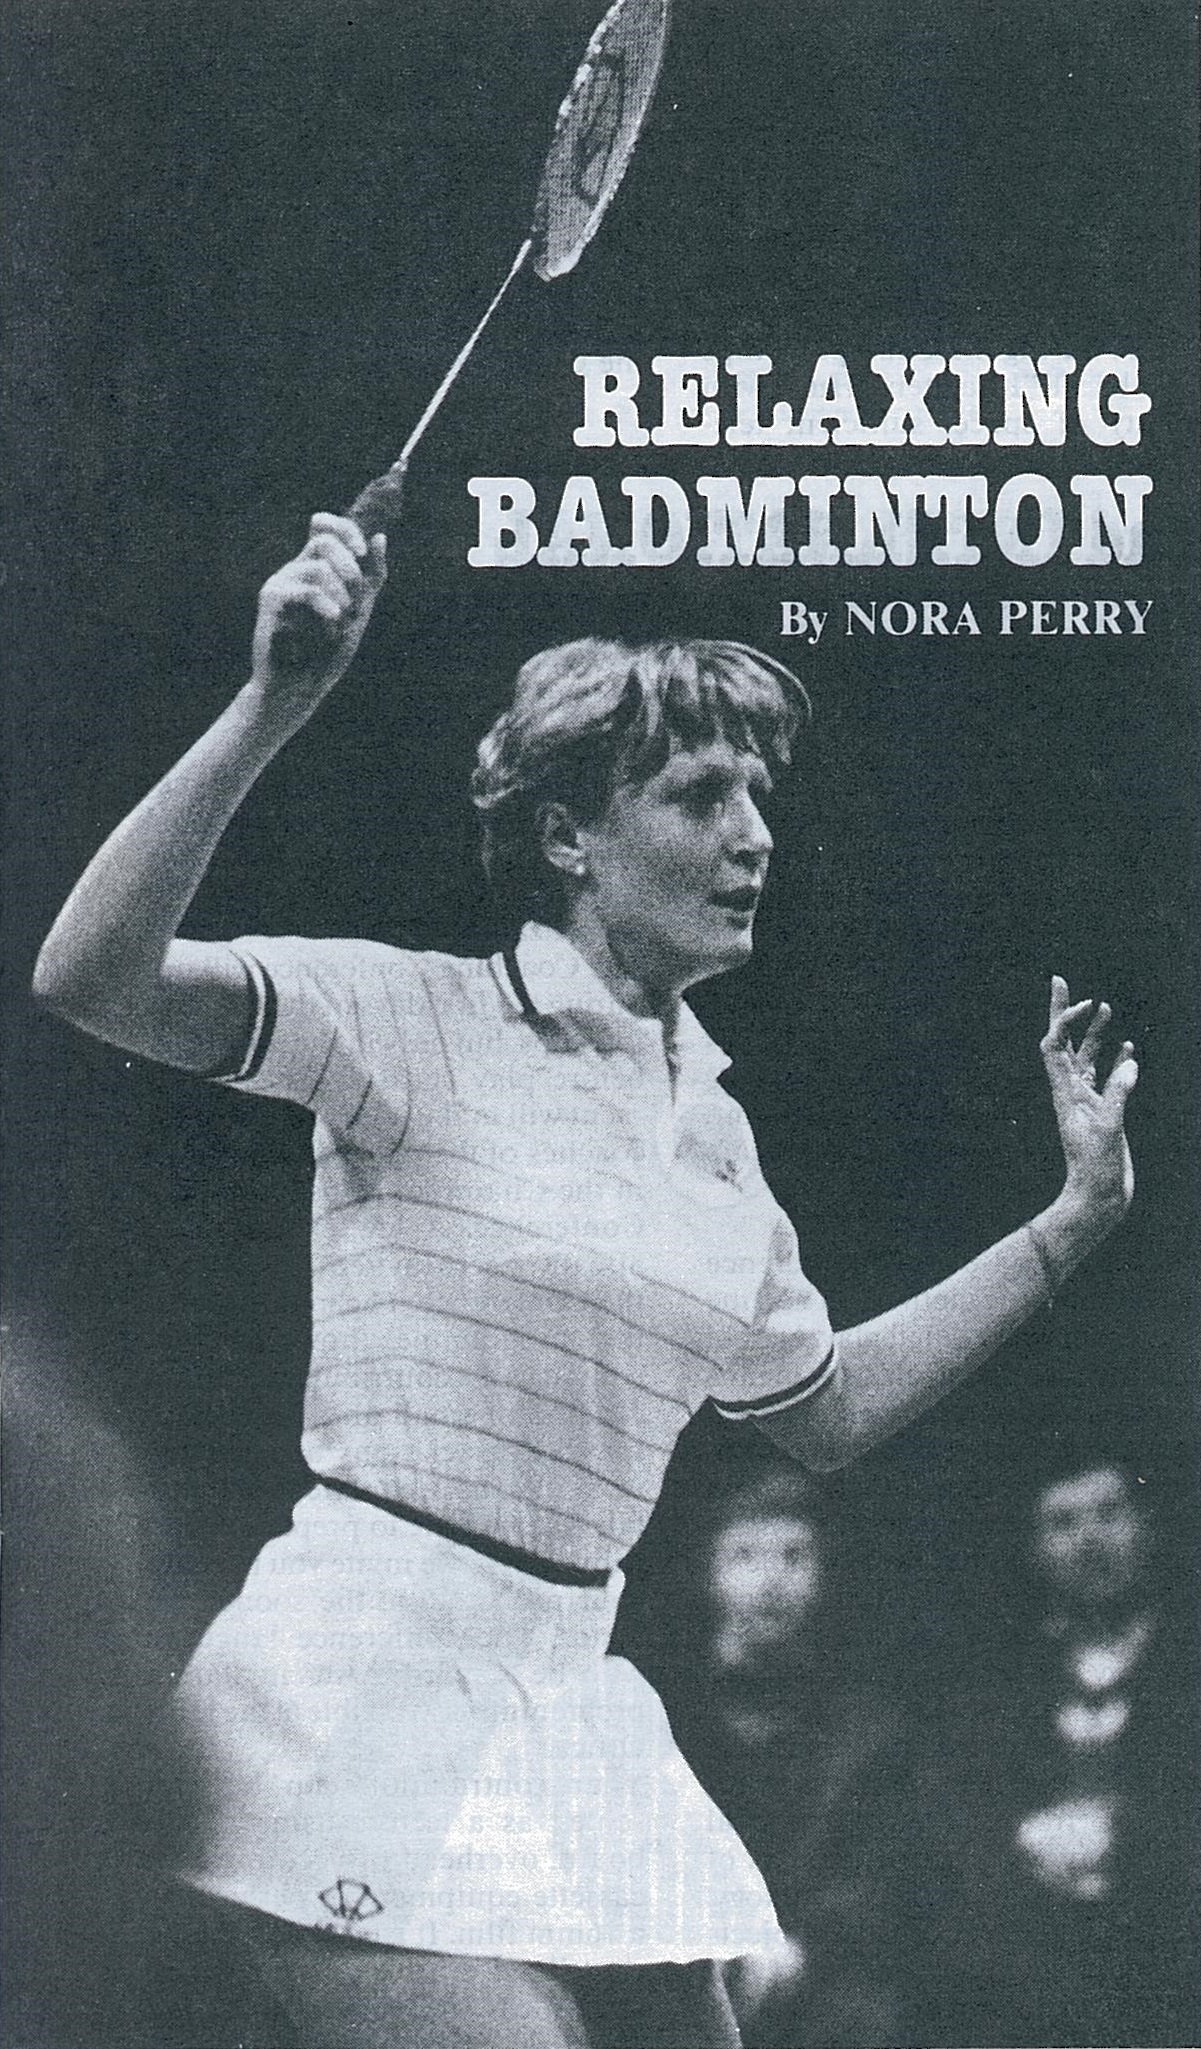 Cover of the book, relaxing badminton by nora perry - wb sep 1982